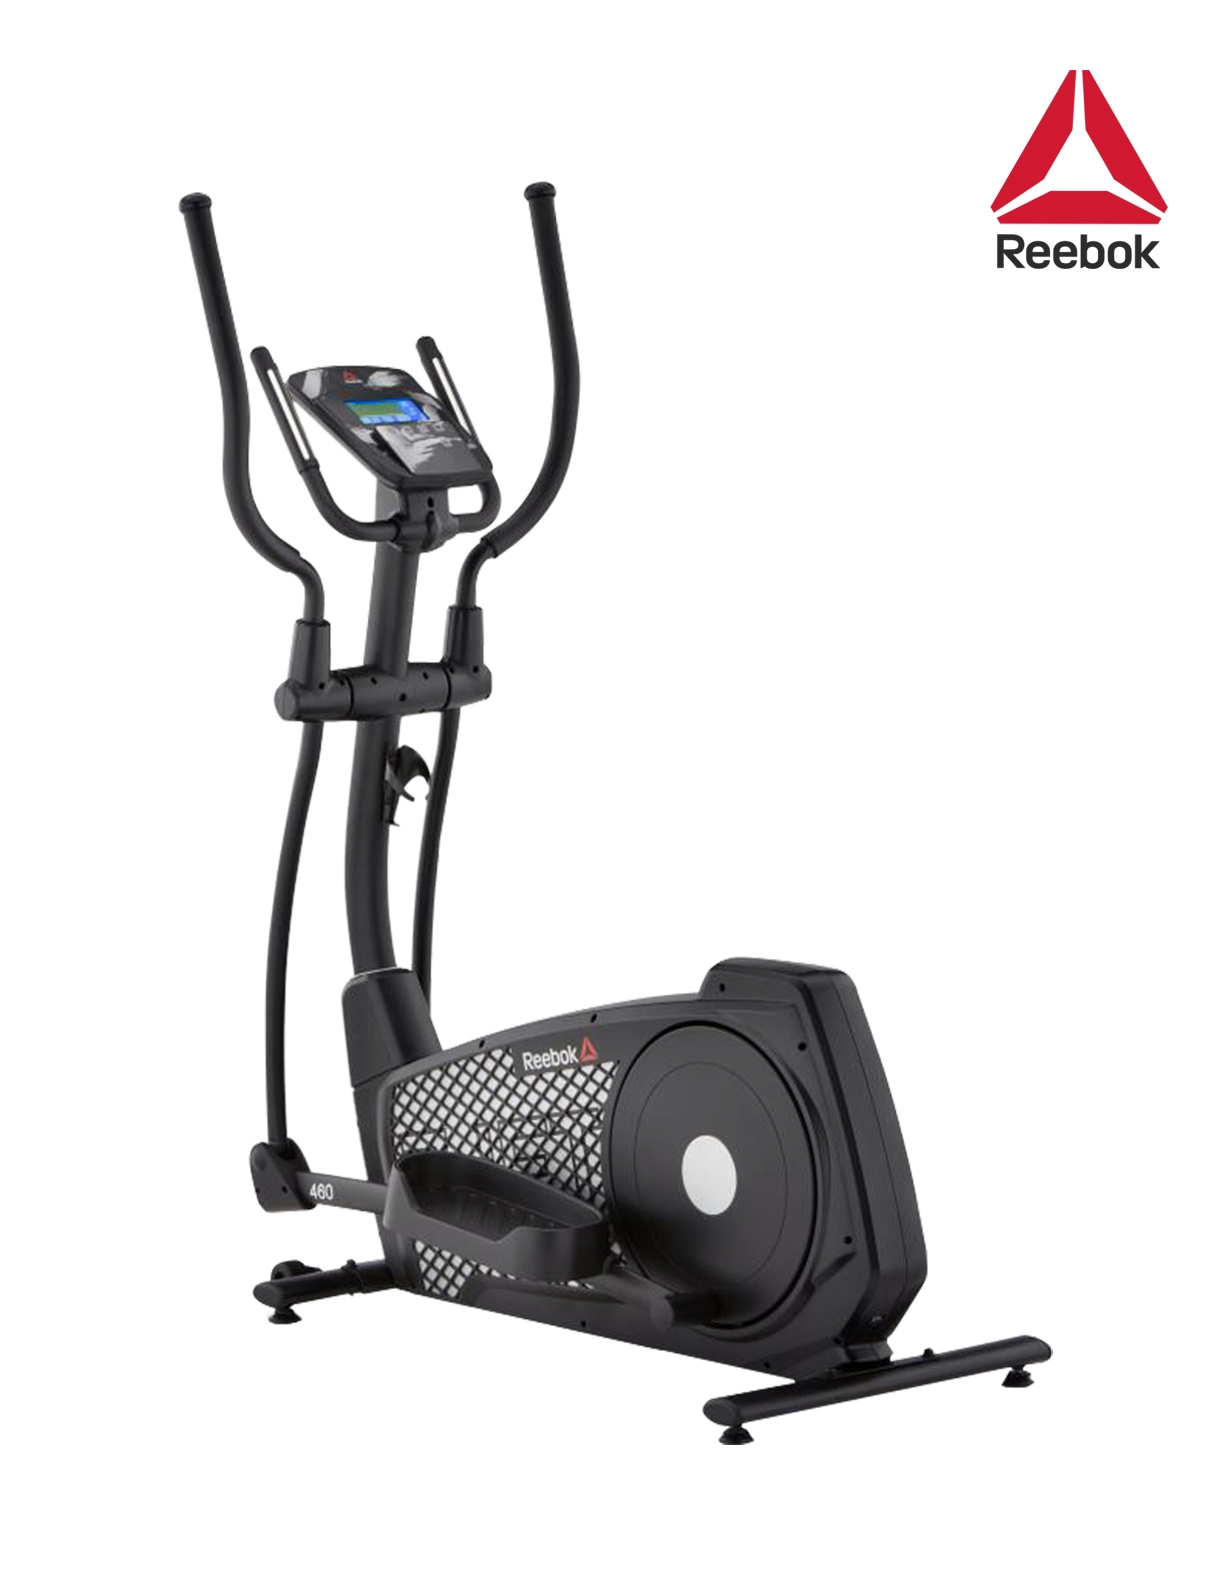 ZJET 460 REEBOK ELLIPTICAL CROSS TRAINER